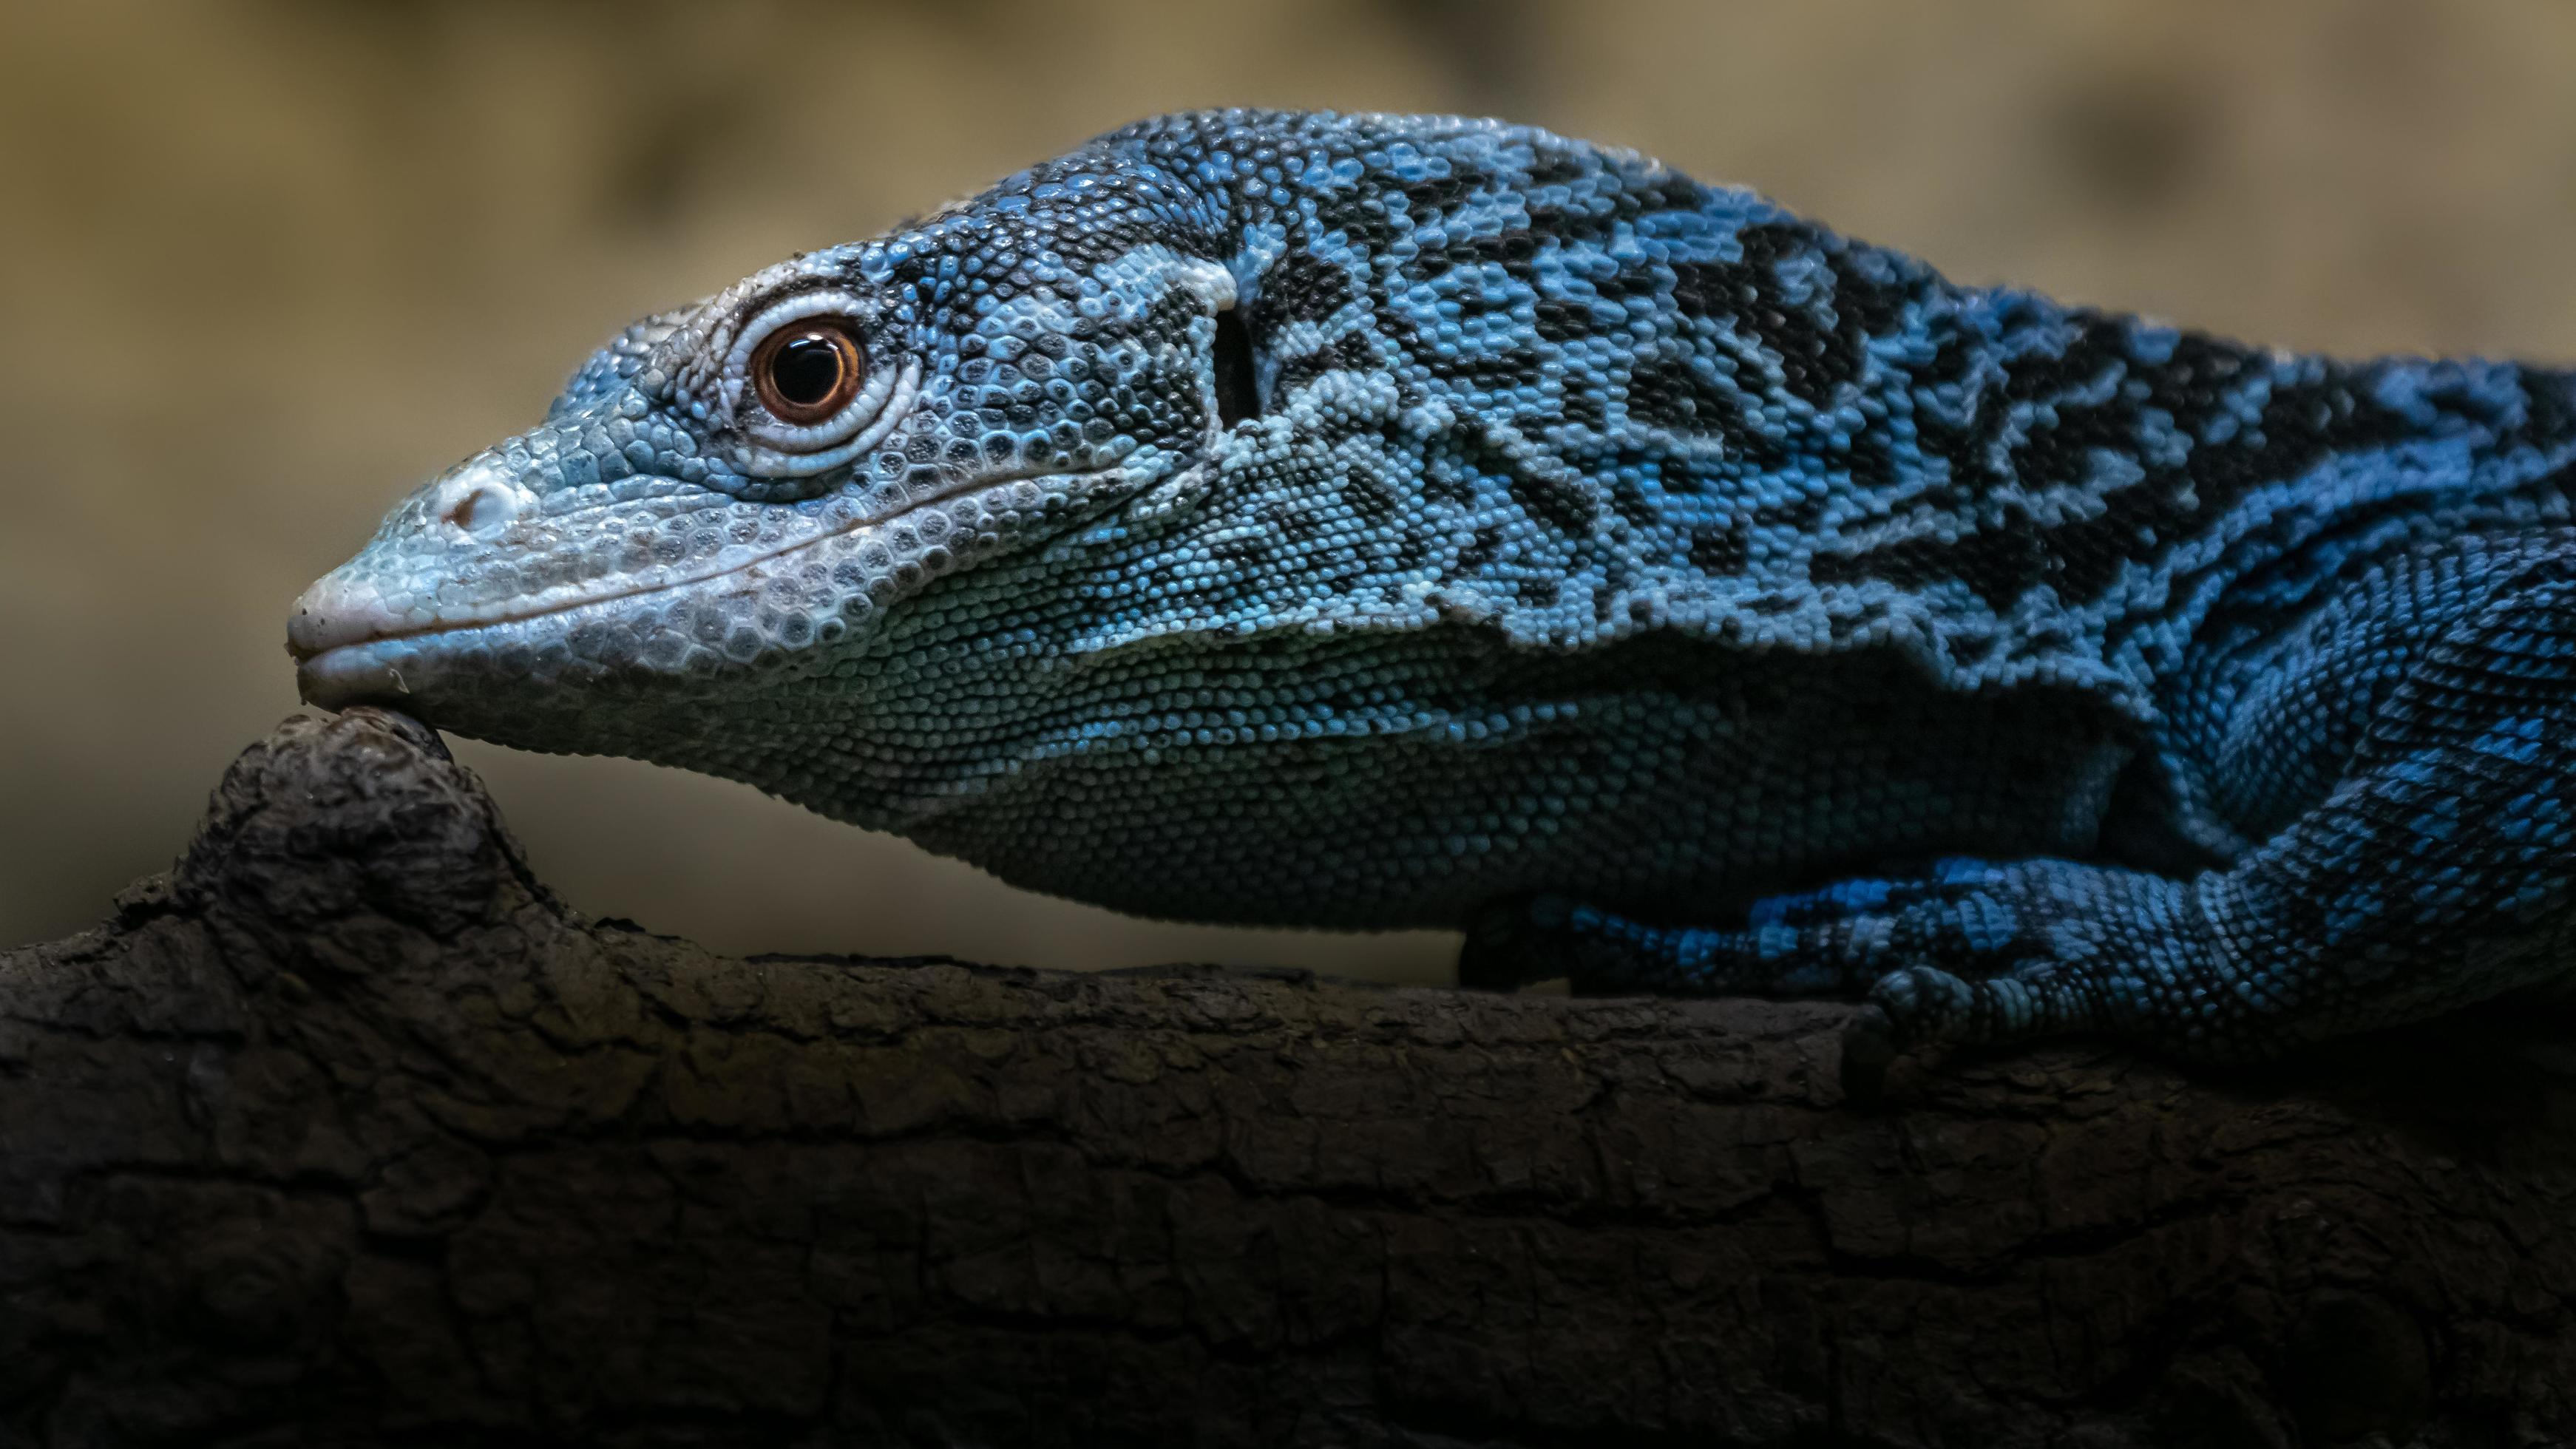 Blue spotted tree monitor 2408008 Stock Photo at Vecteezy